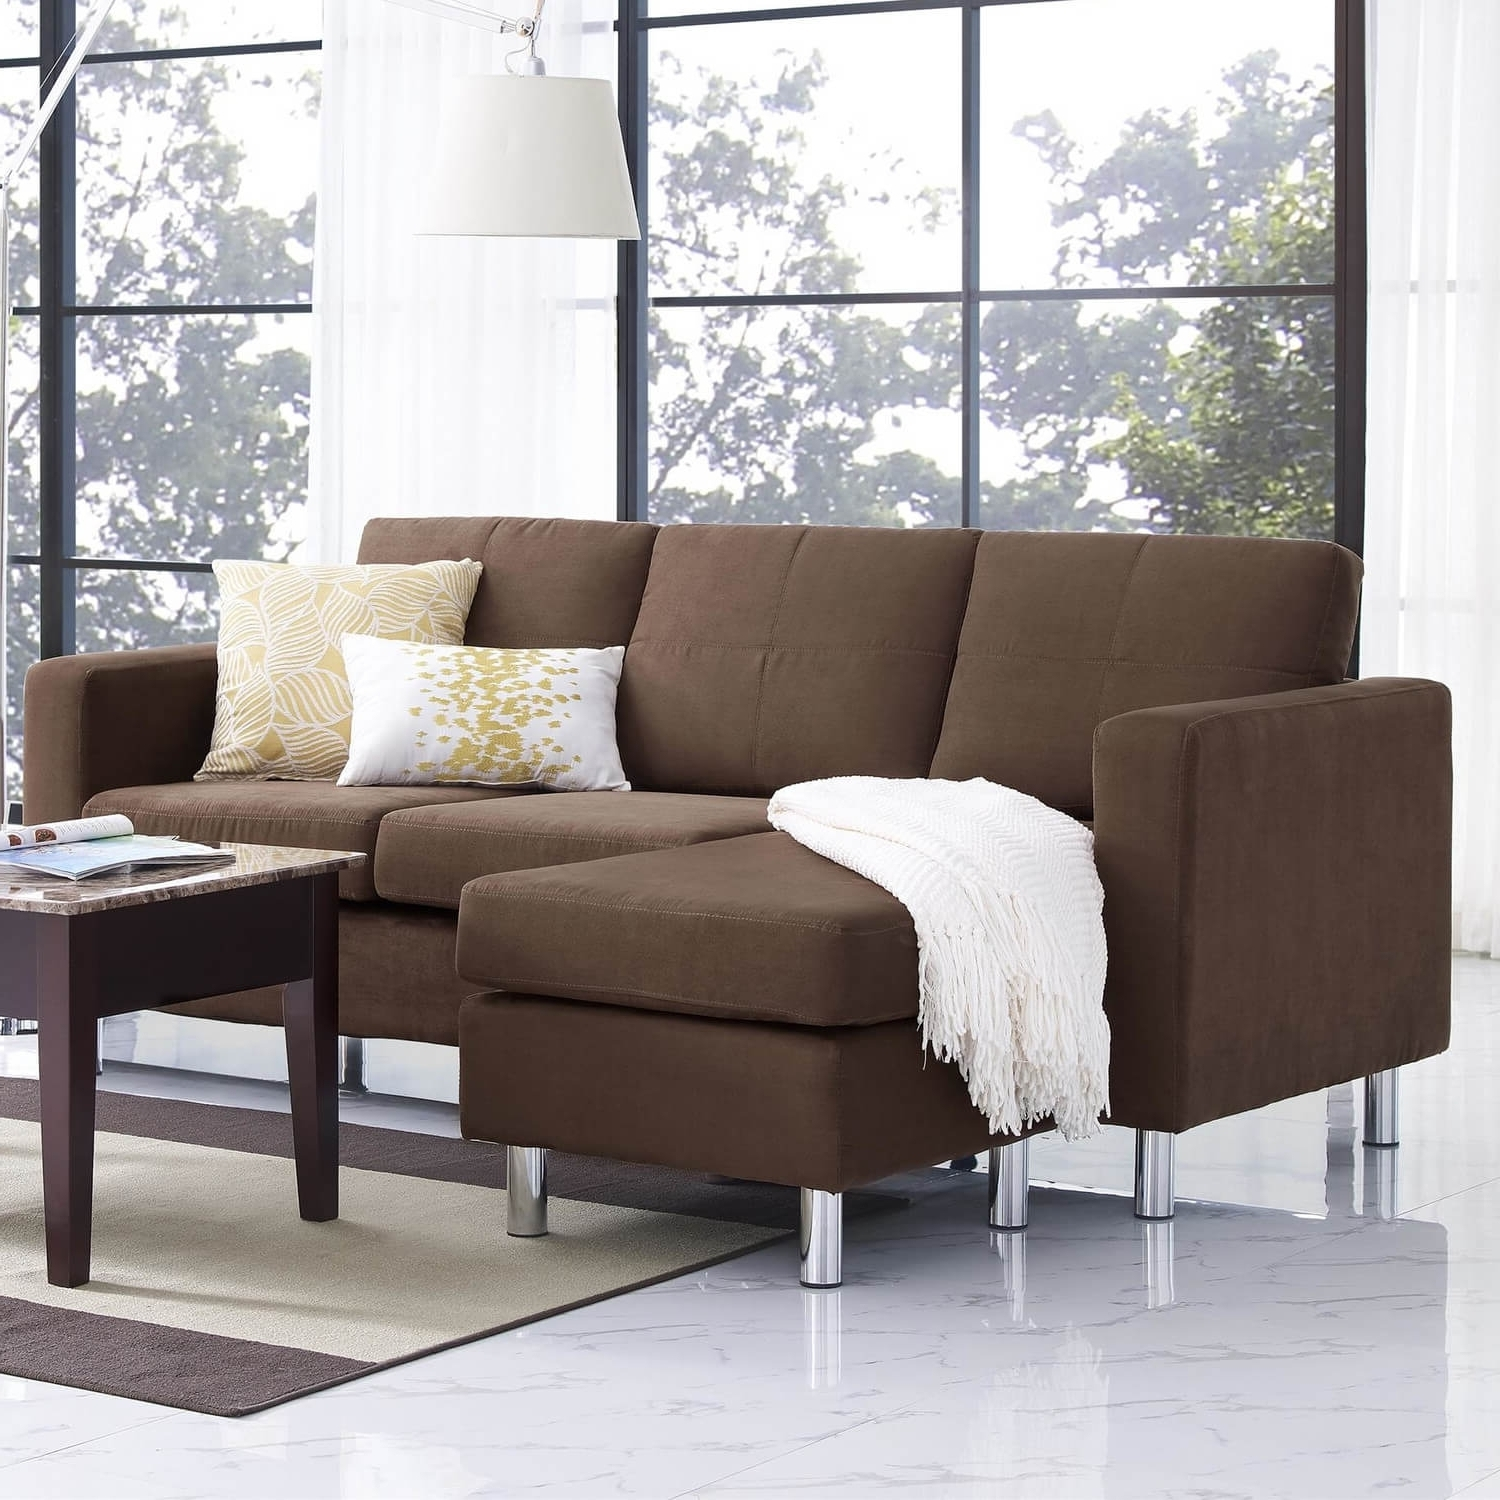 Preferred Sectional Sofa Under 500 Dollars • Sectional Sofa For Sectional Sofas Under  (View 7 of 15)